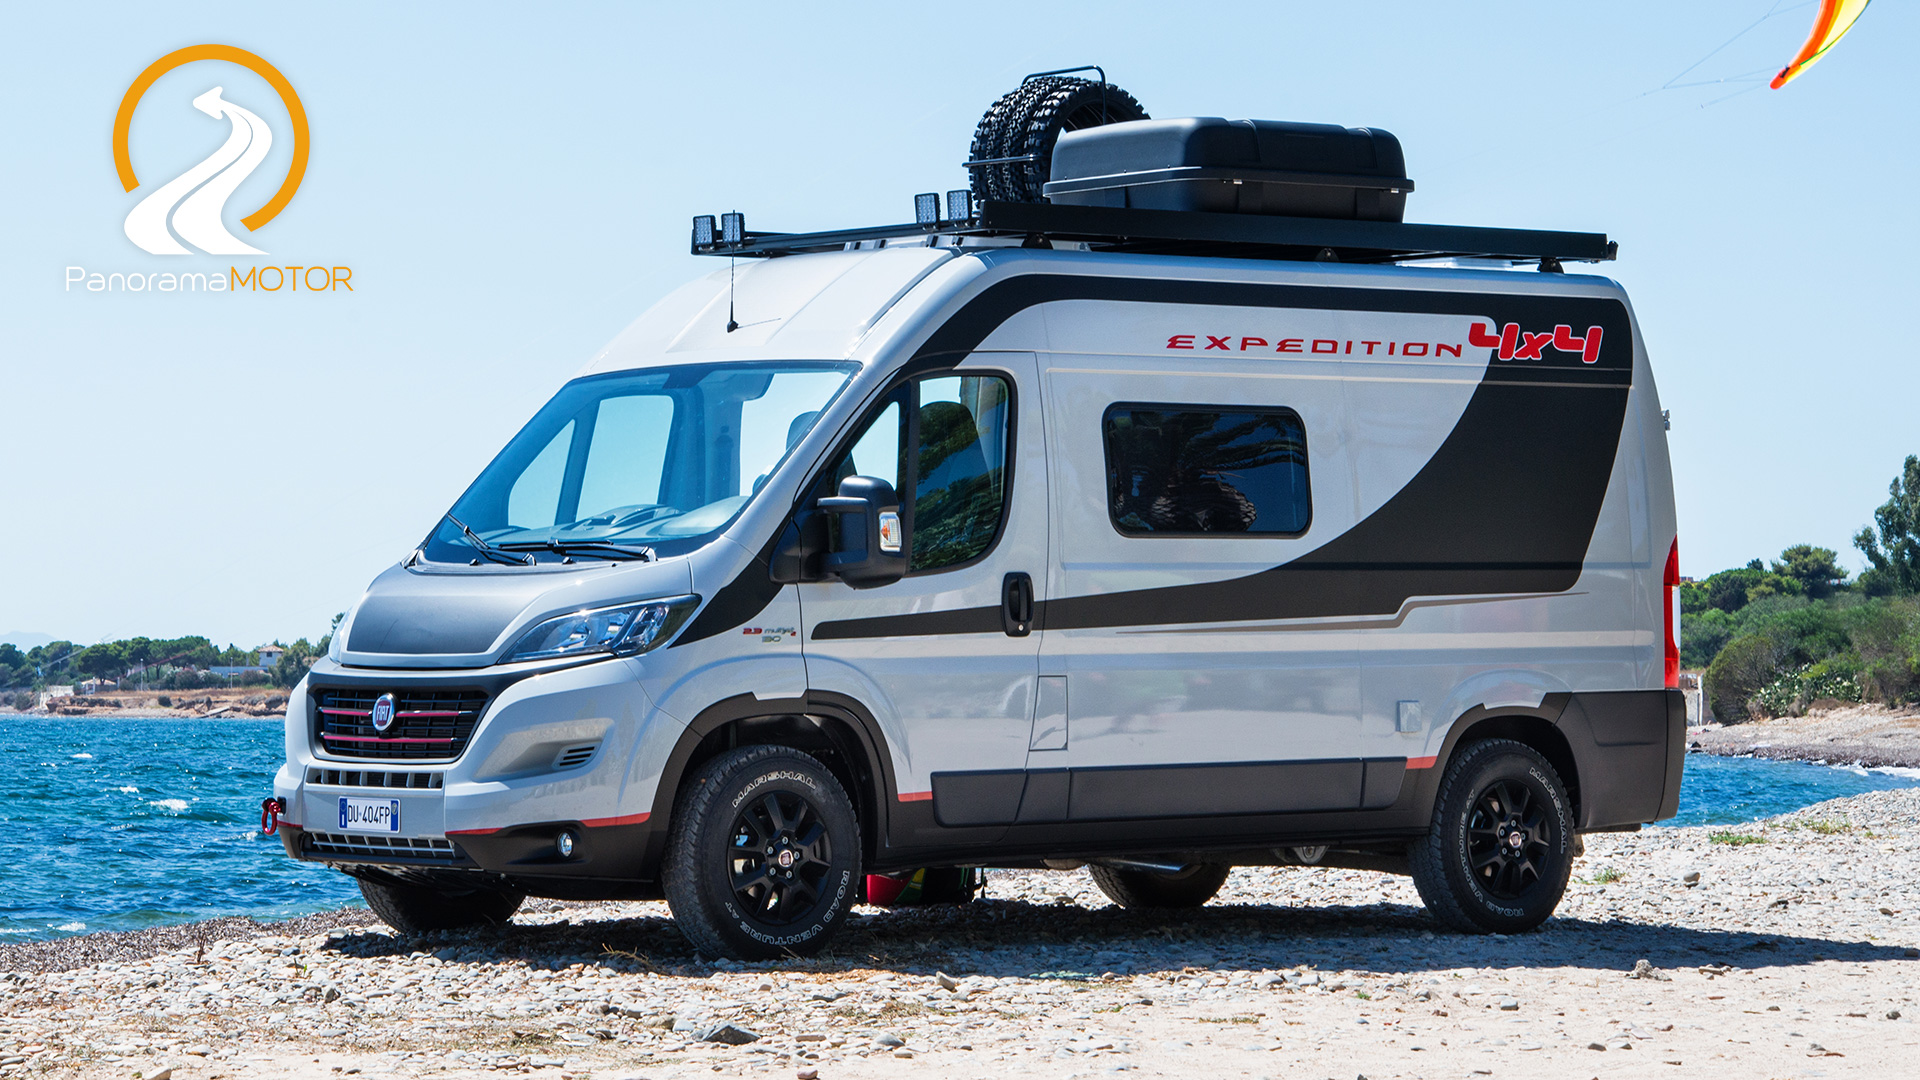 fiat ducato 4x4 expedition 2017 panorama motor. Black Bedroom Furniture Sets. Home Design Ideas